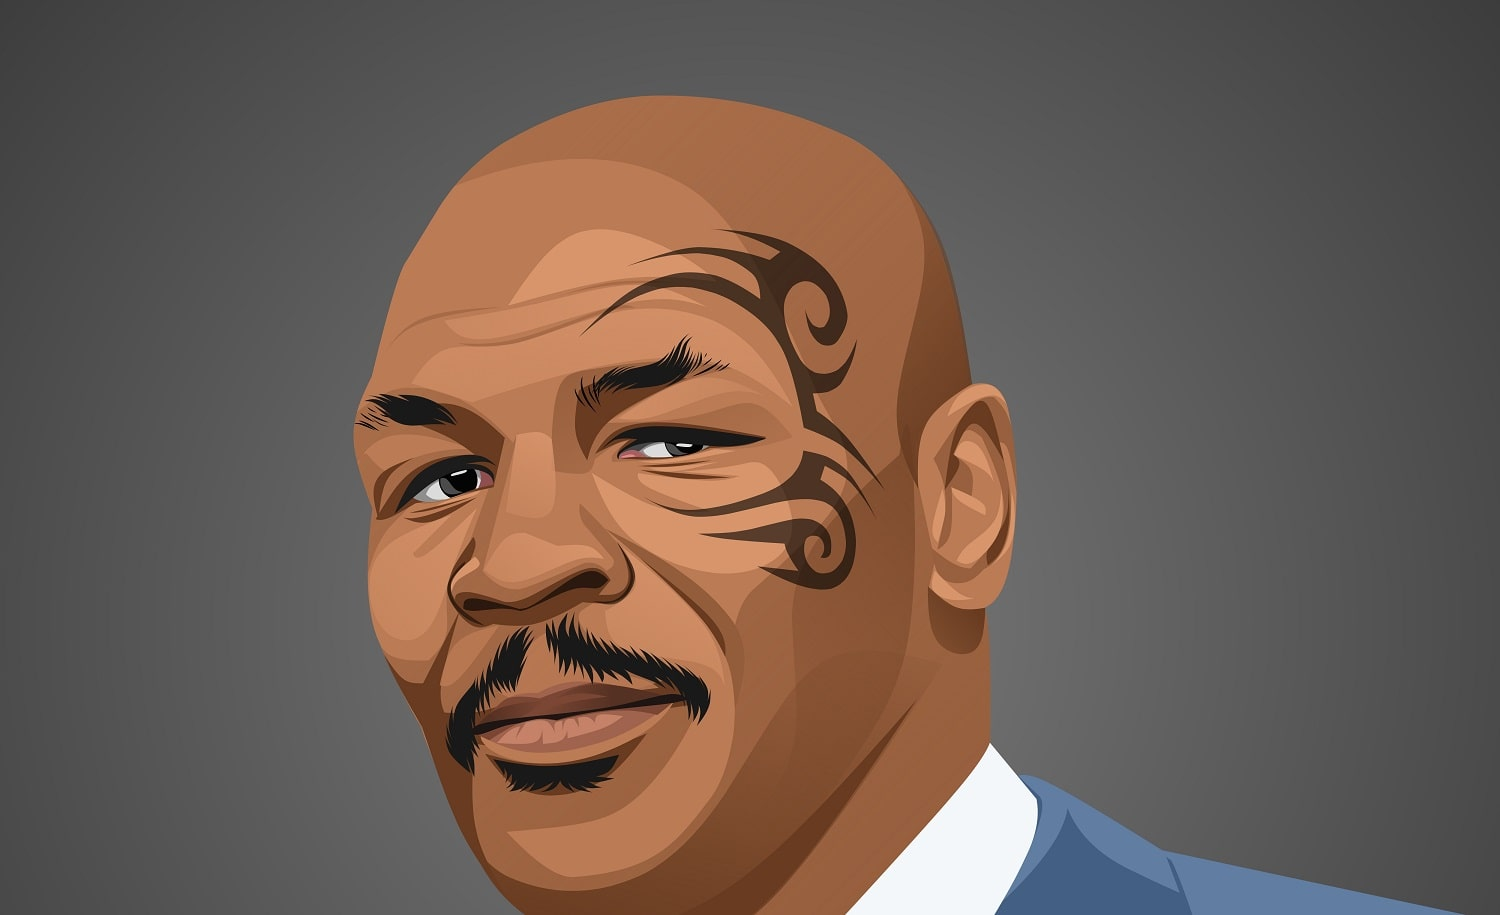 Mike Tyson Copyright by Inspirationfeed.